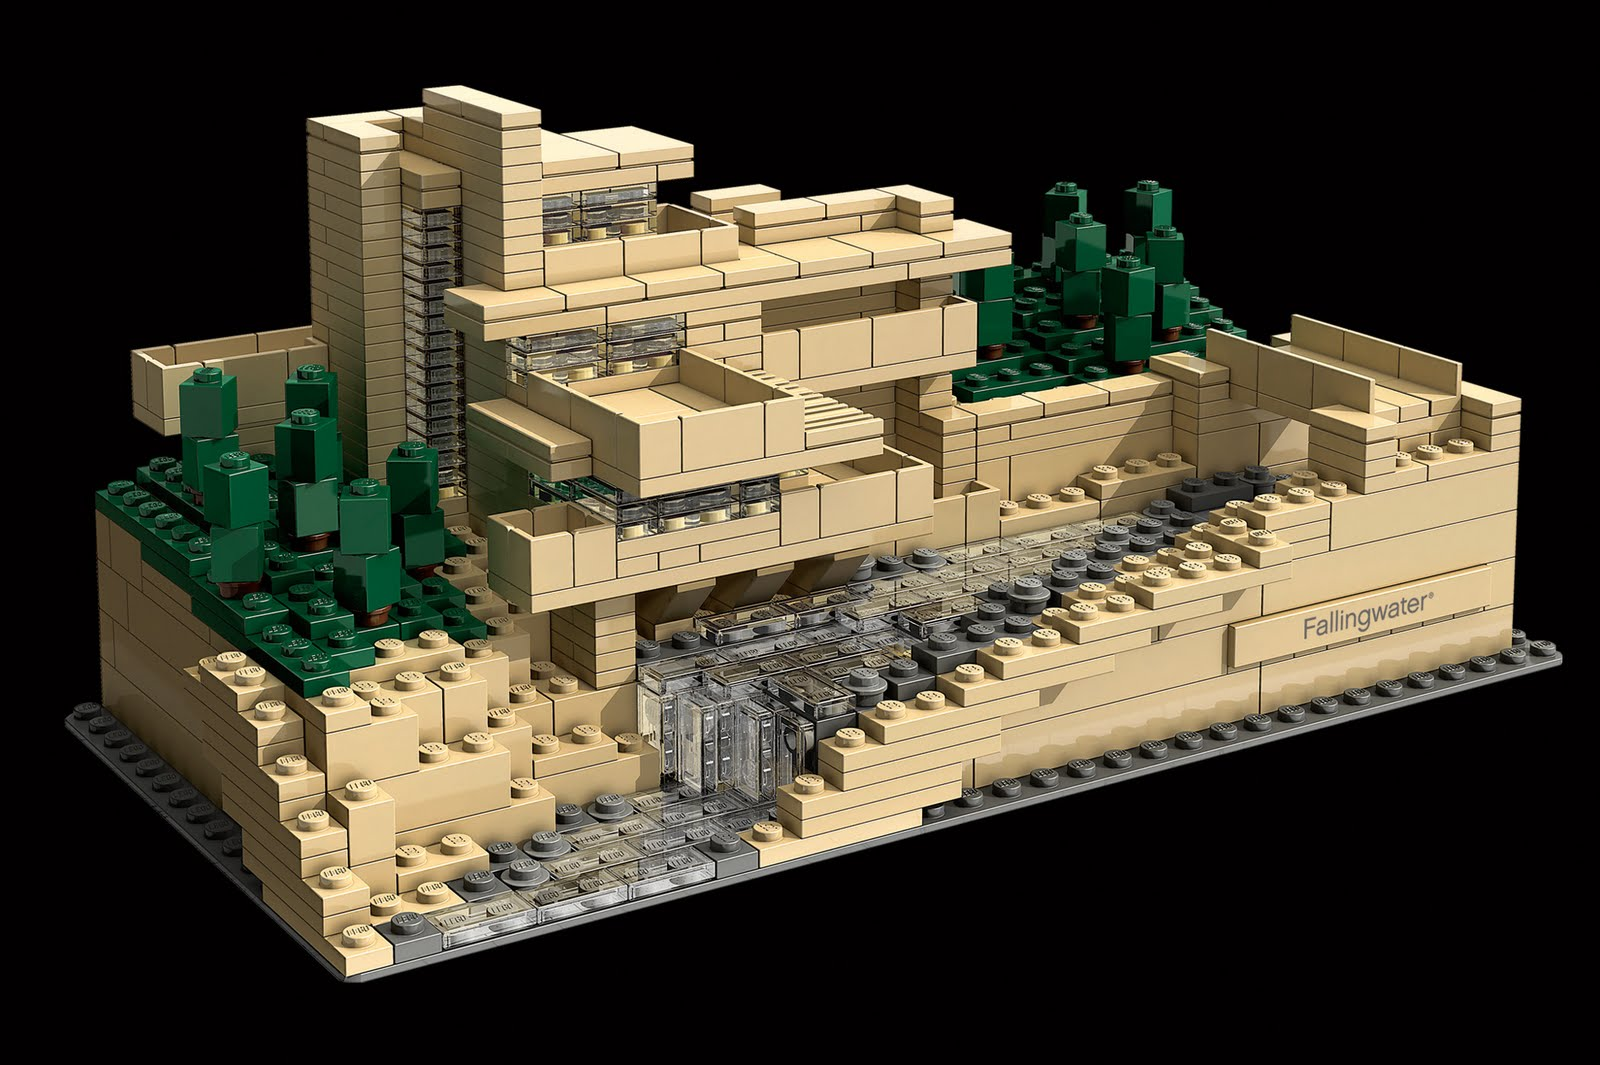 Lego architecture - Lego falling waters ...